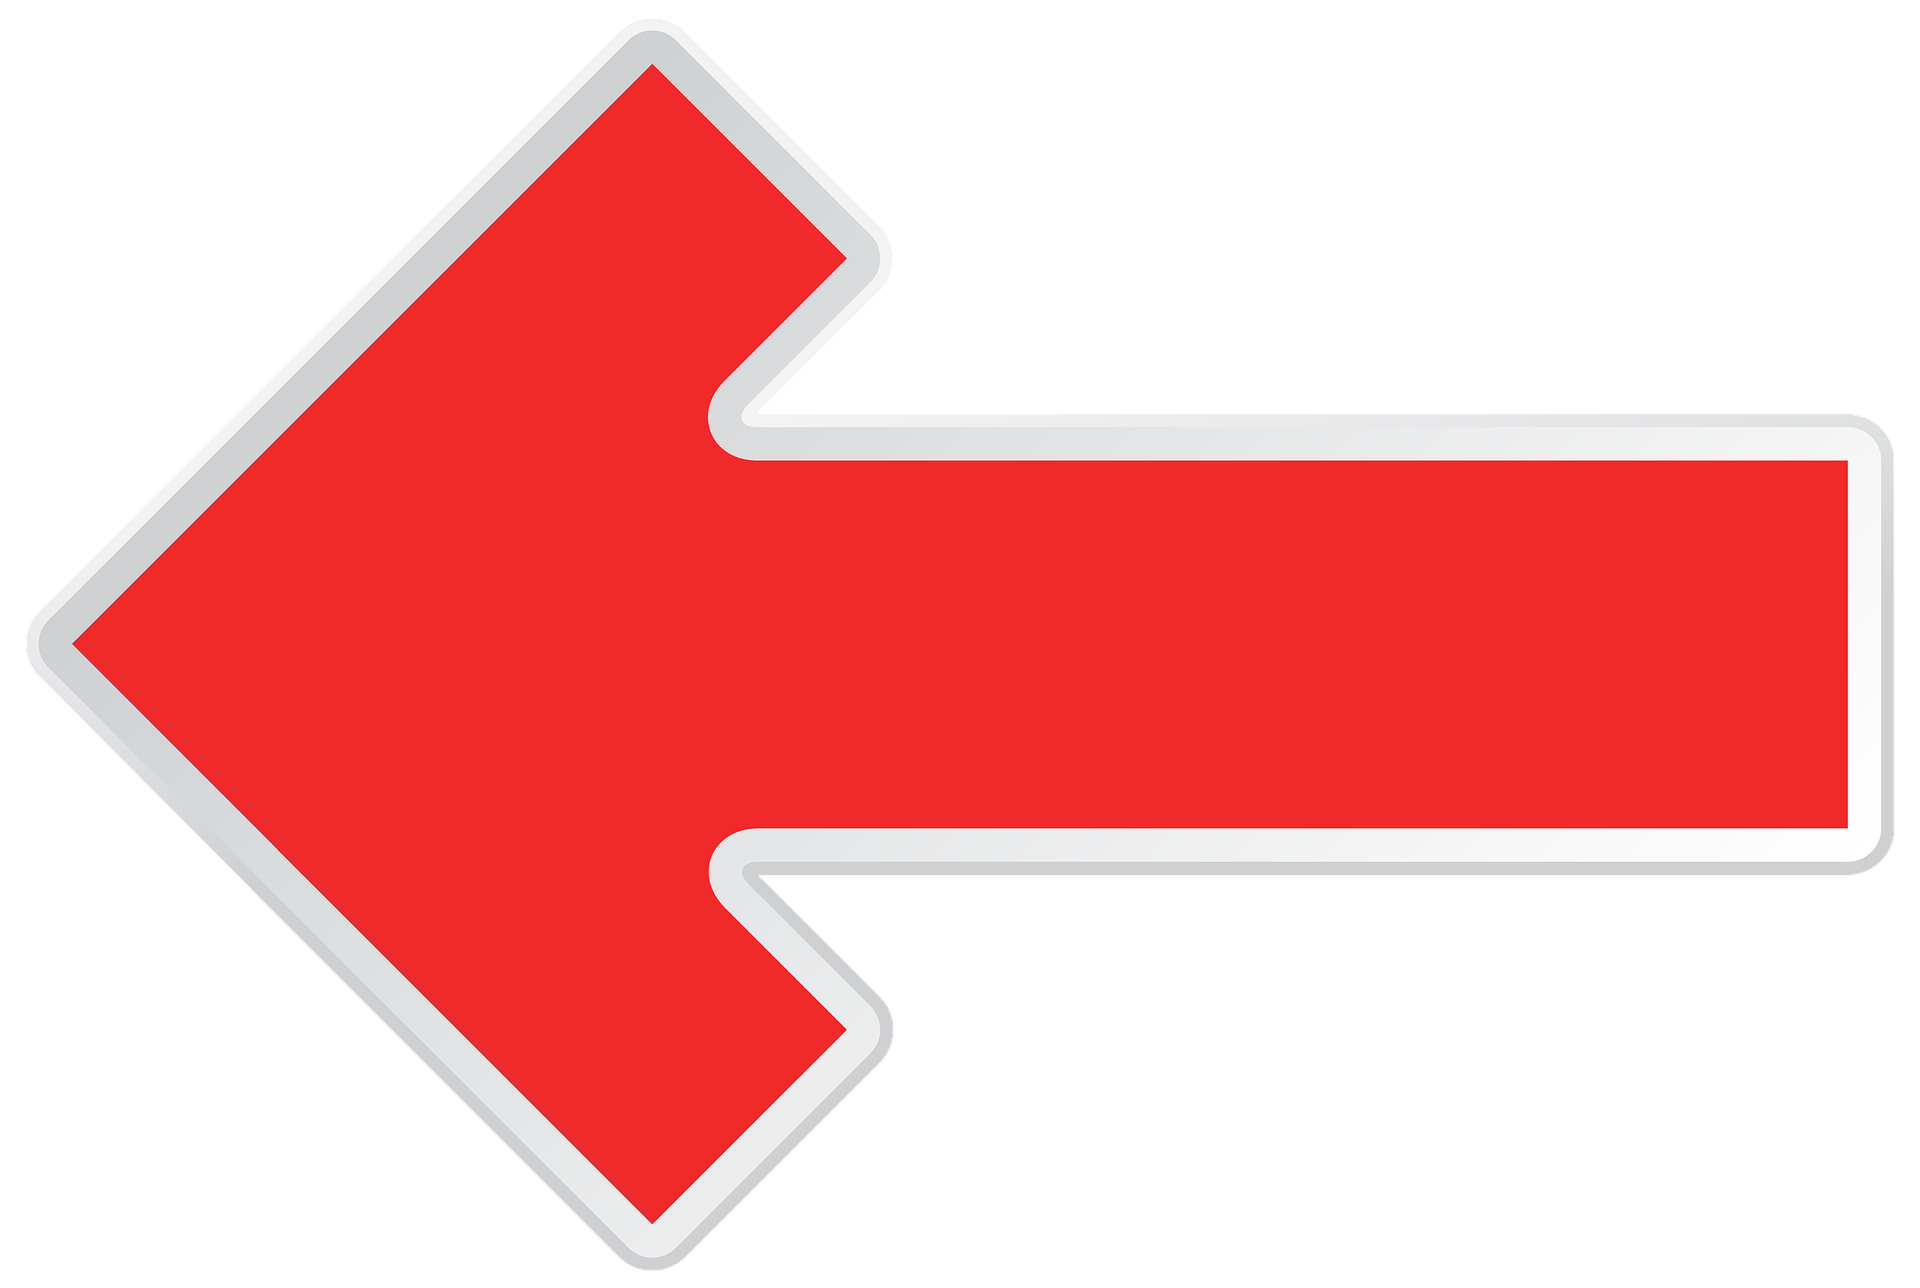 red-arrow-2718071_1920.png